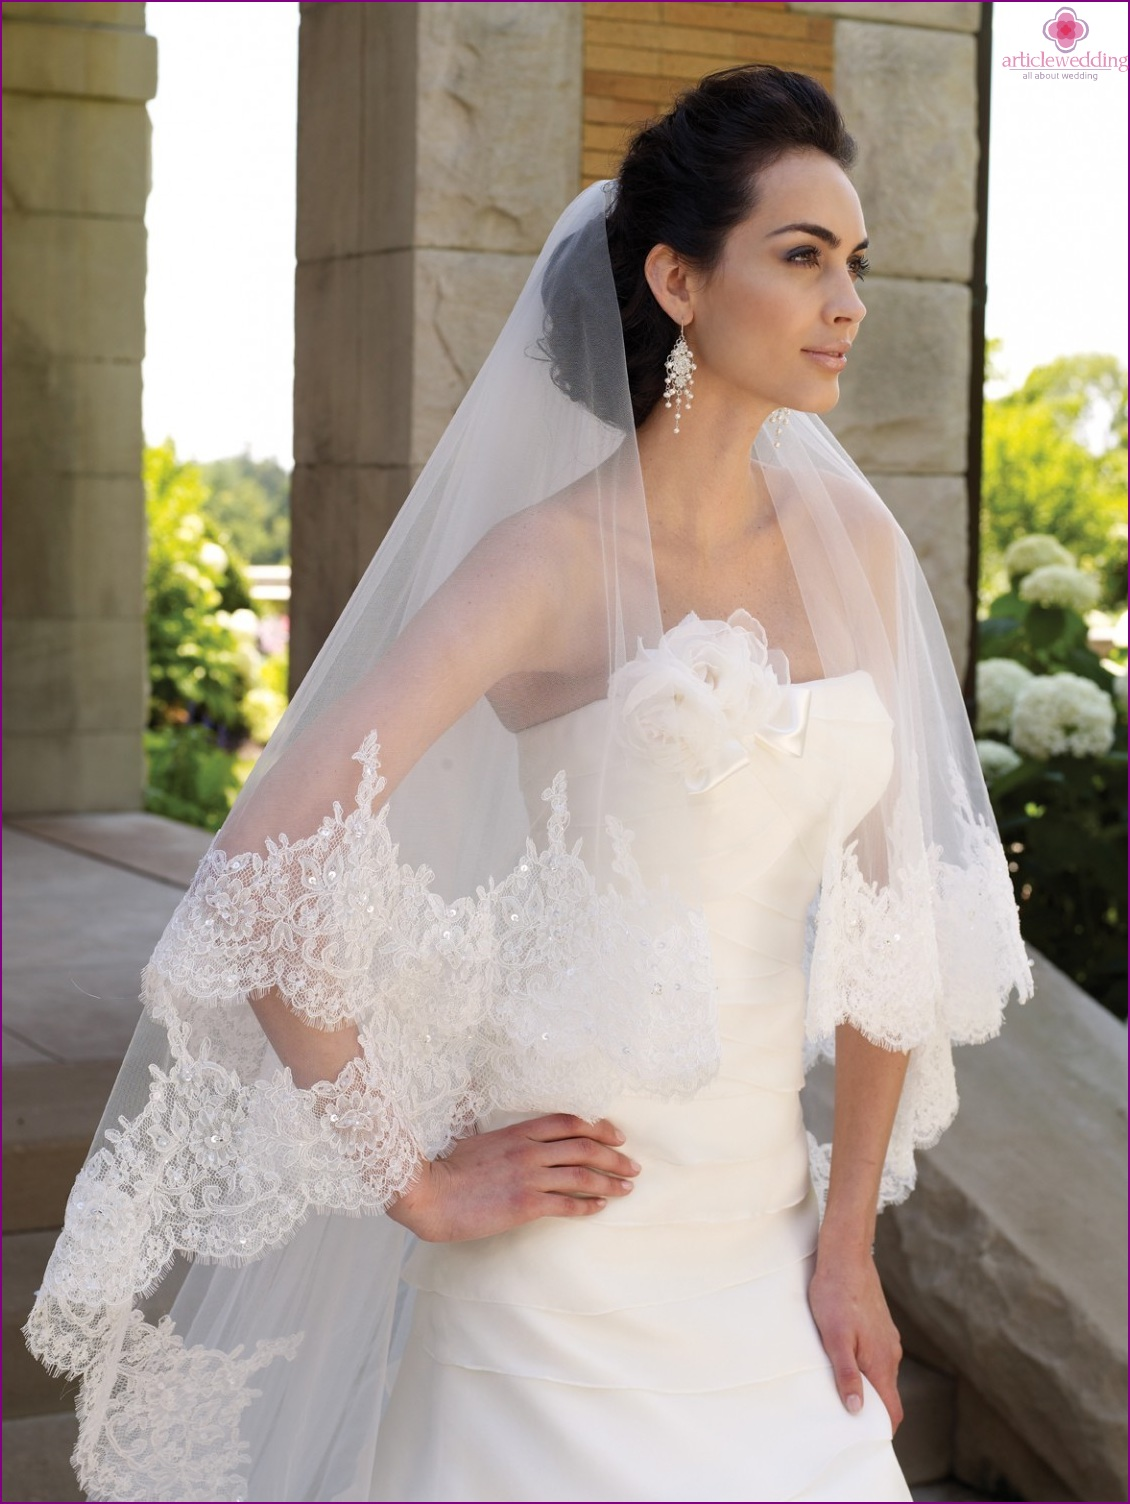 Long veil for the bride